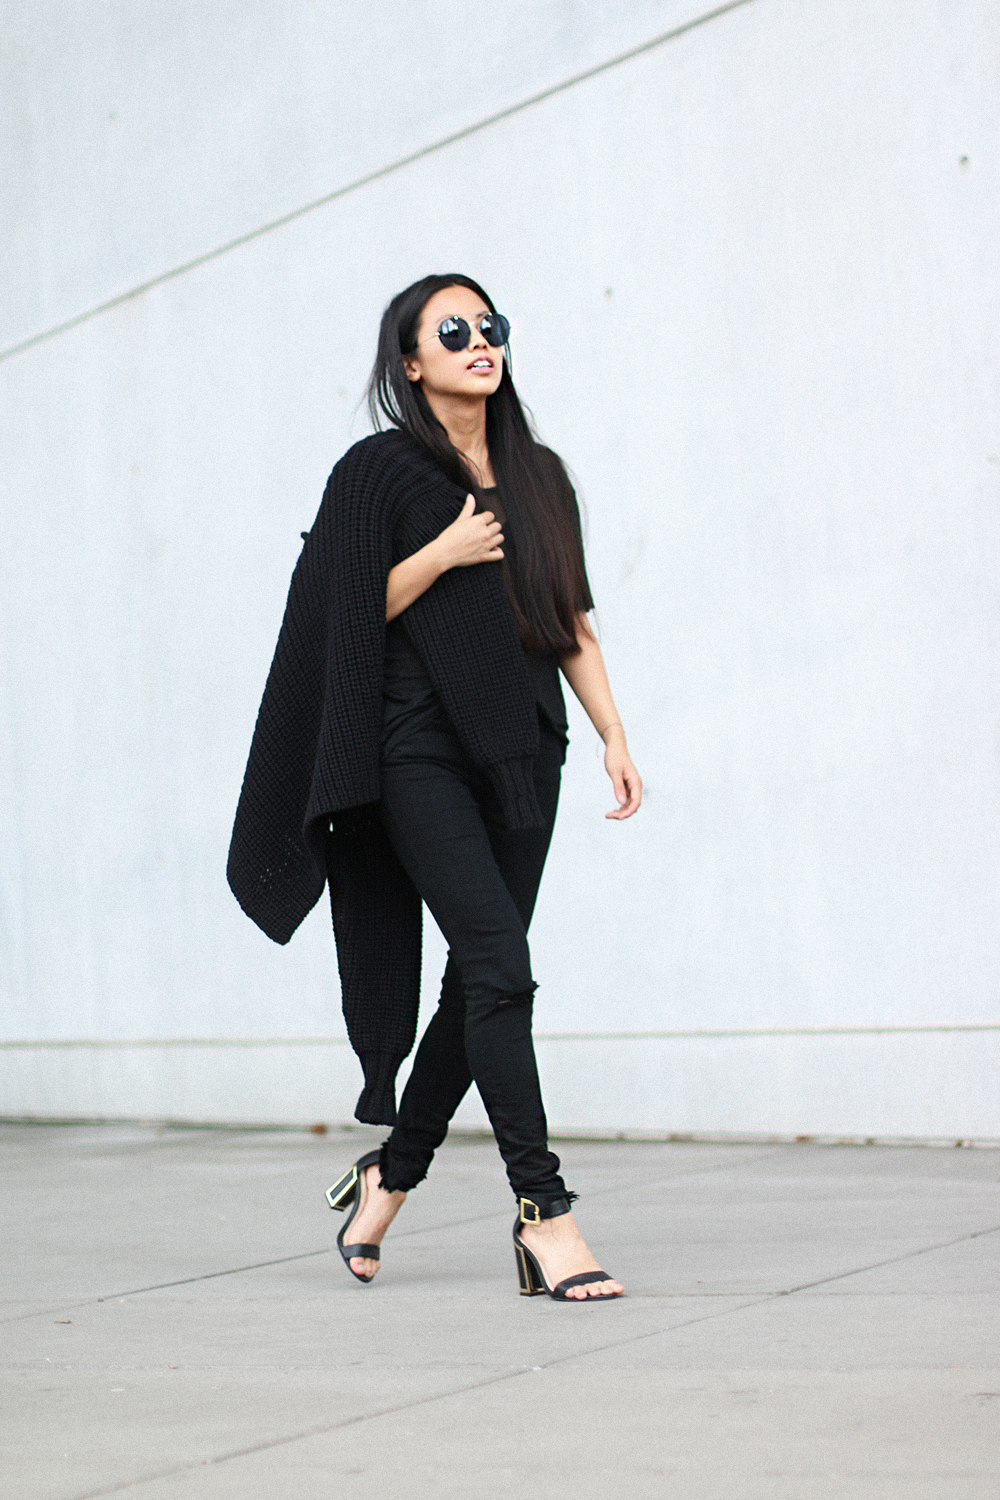 IHEARTALICE.DE – Fashion & Travel Blog: All Black Everything Look wearing  Alexander Wang Turtleneck Knitwear, Ripped Jeans